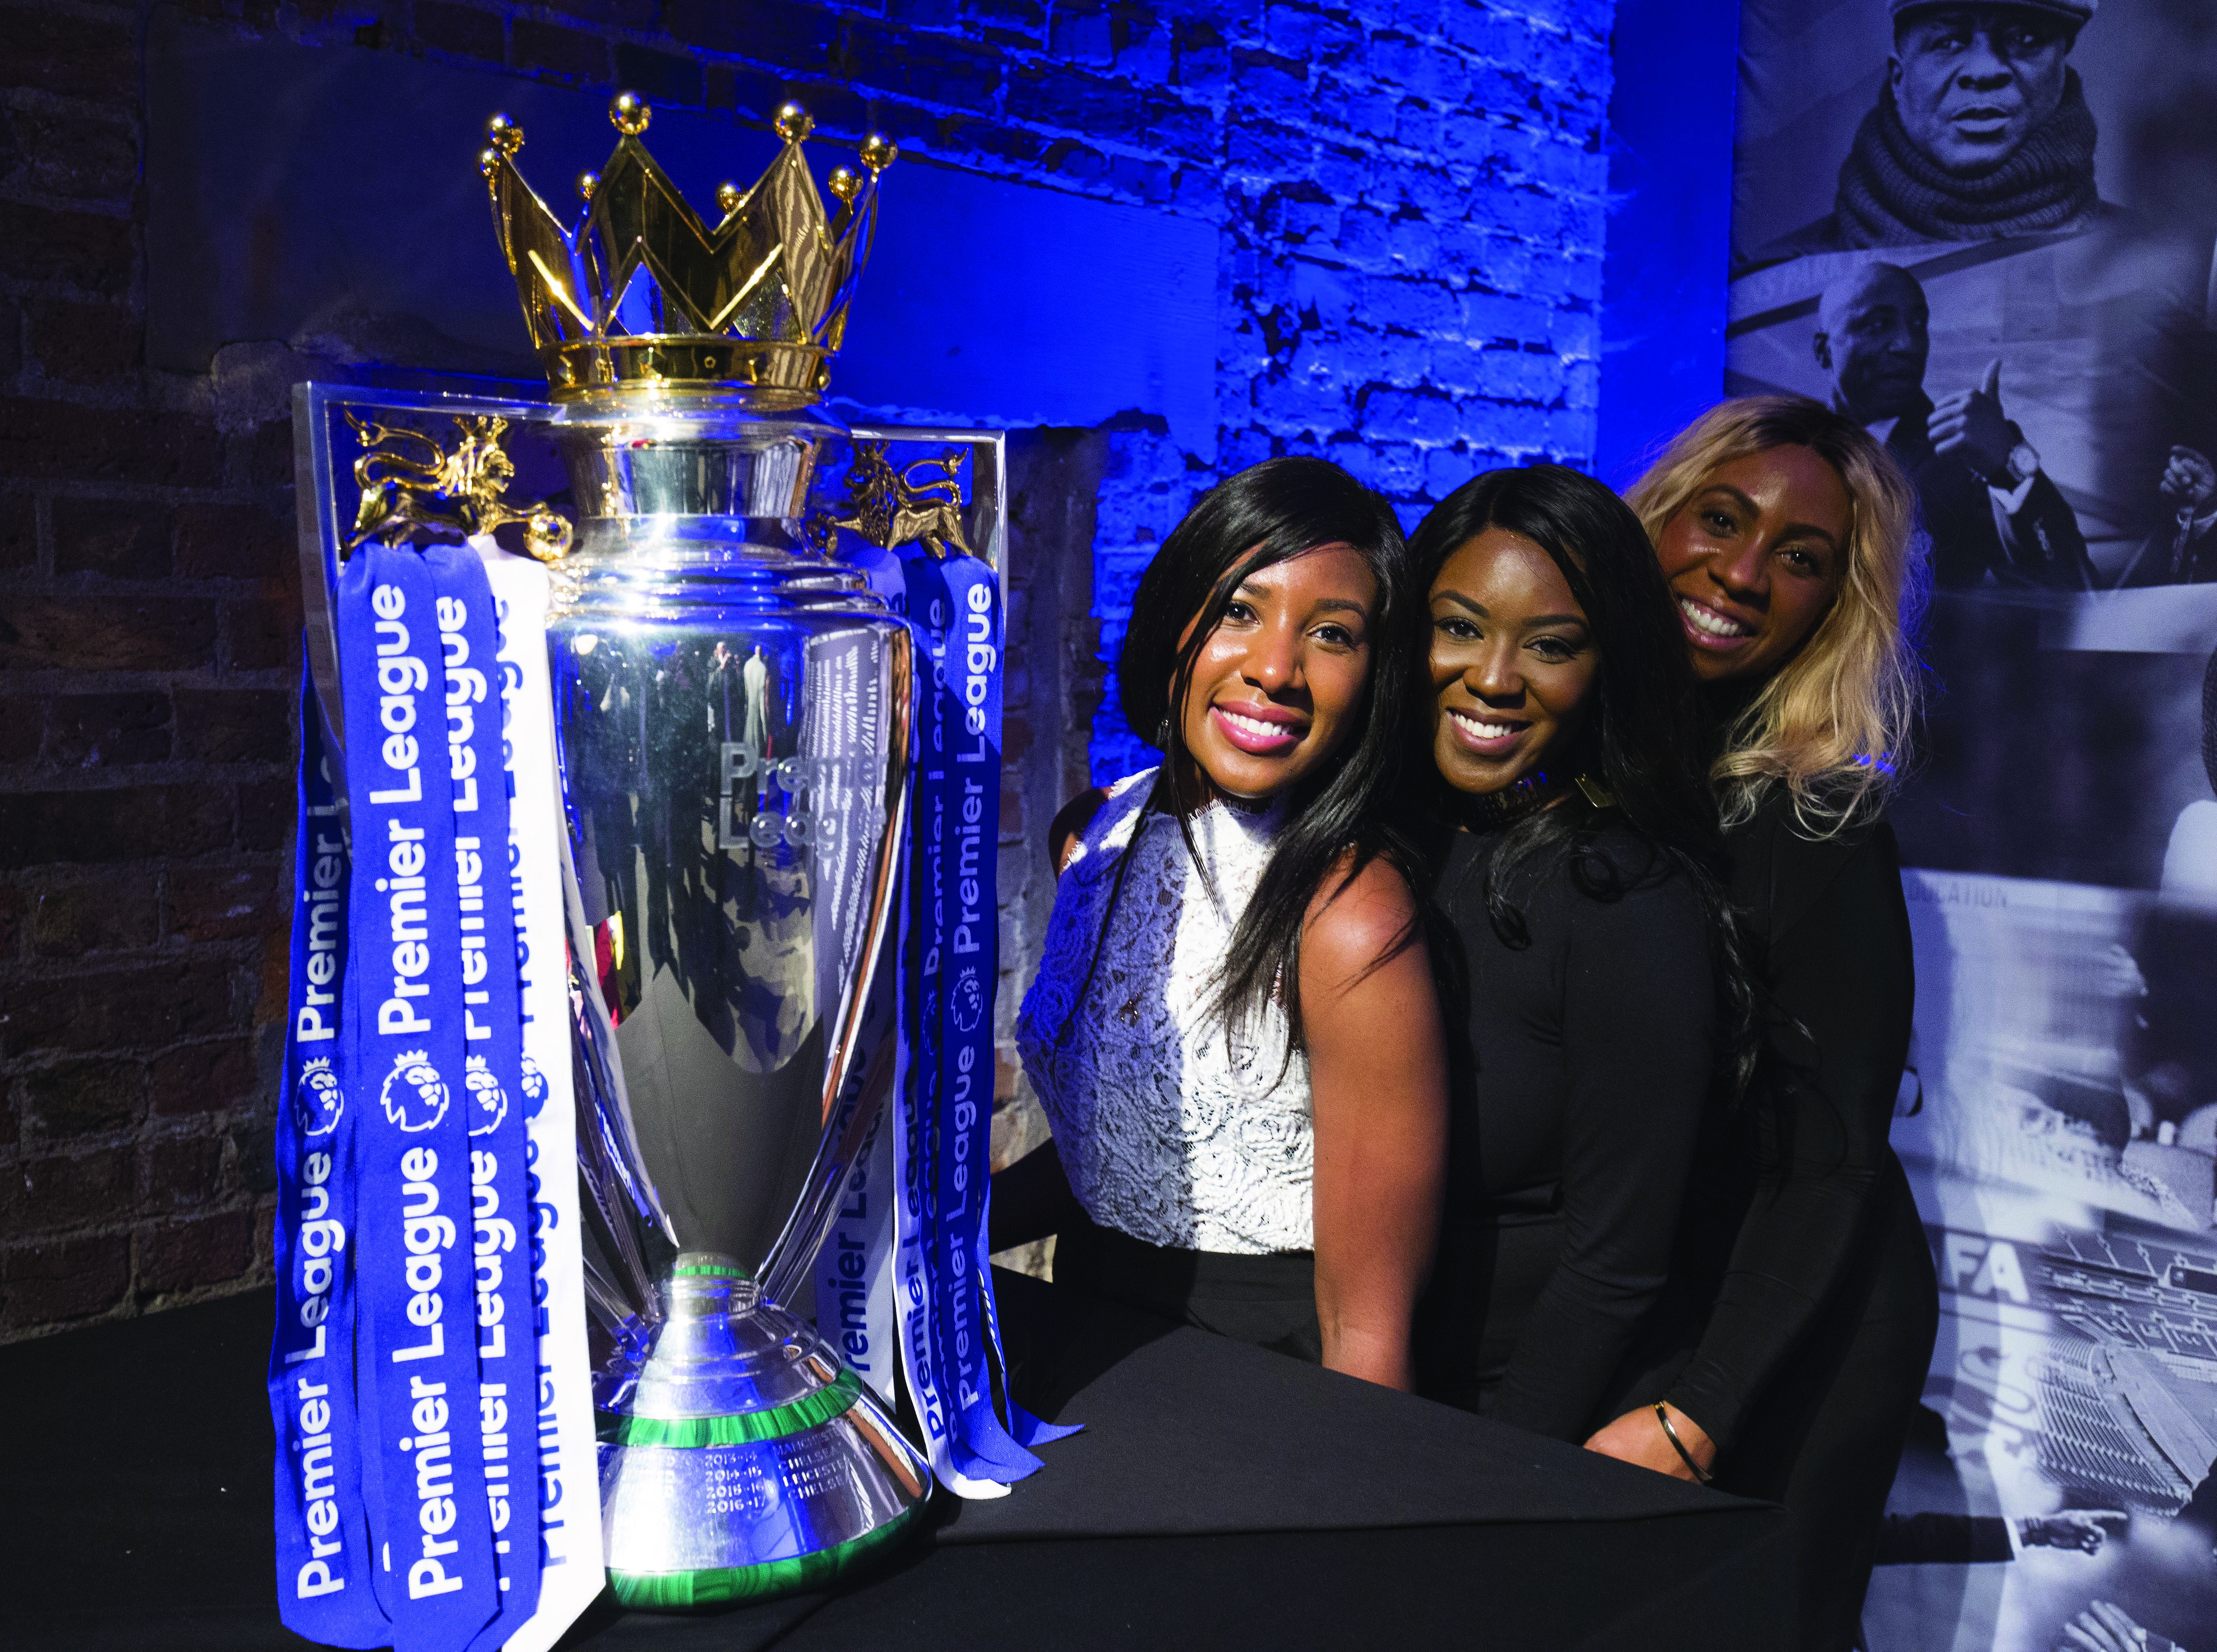 LONDON, ENGLAND - NOVEMBER 08: Guests posing with the Premier League trophy at The Black Football List Celebration on November 8, 2017 in London, England. (Photo by Henry Browne/Getty Images for Premier League)